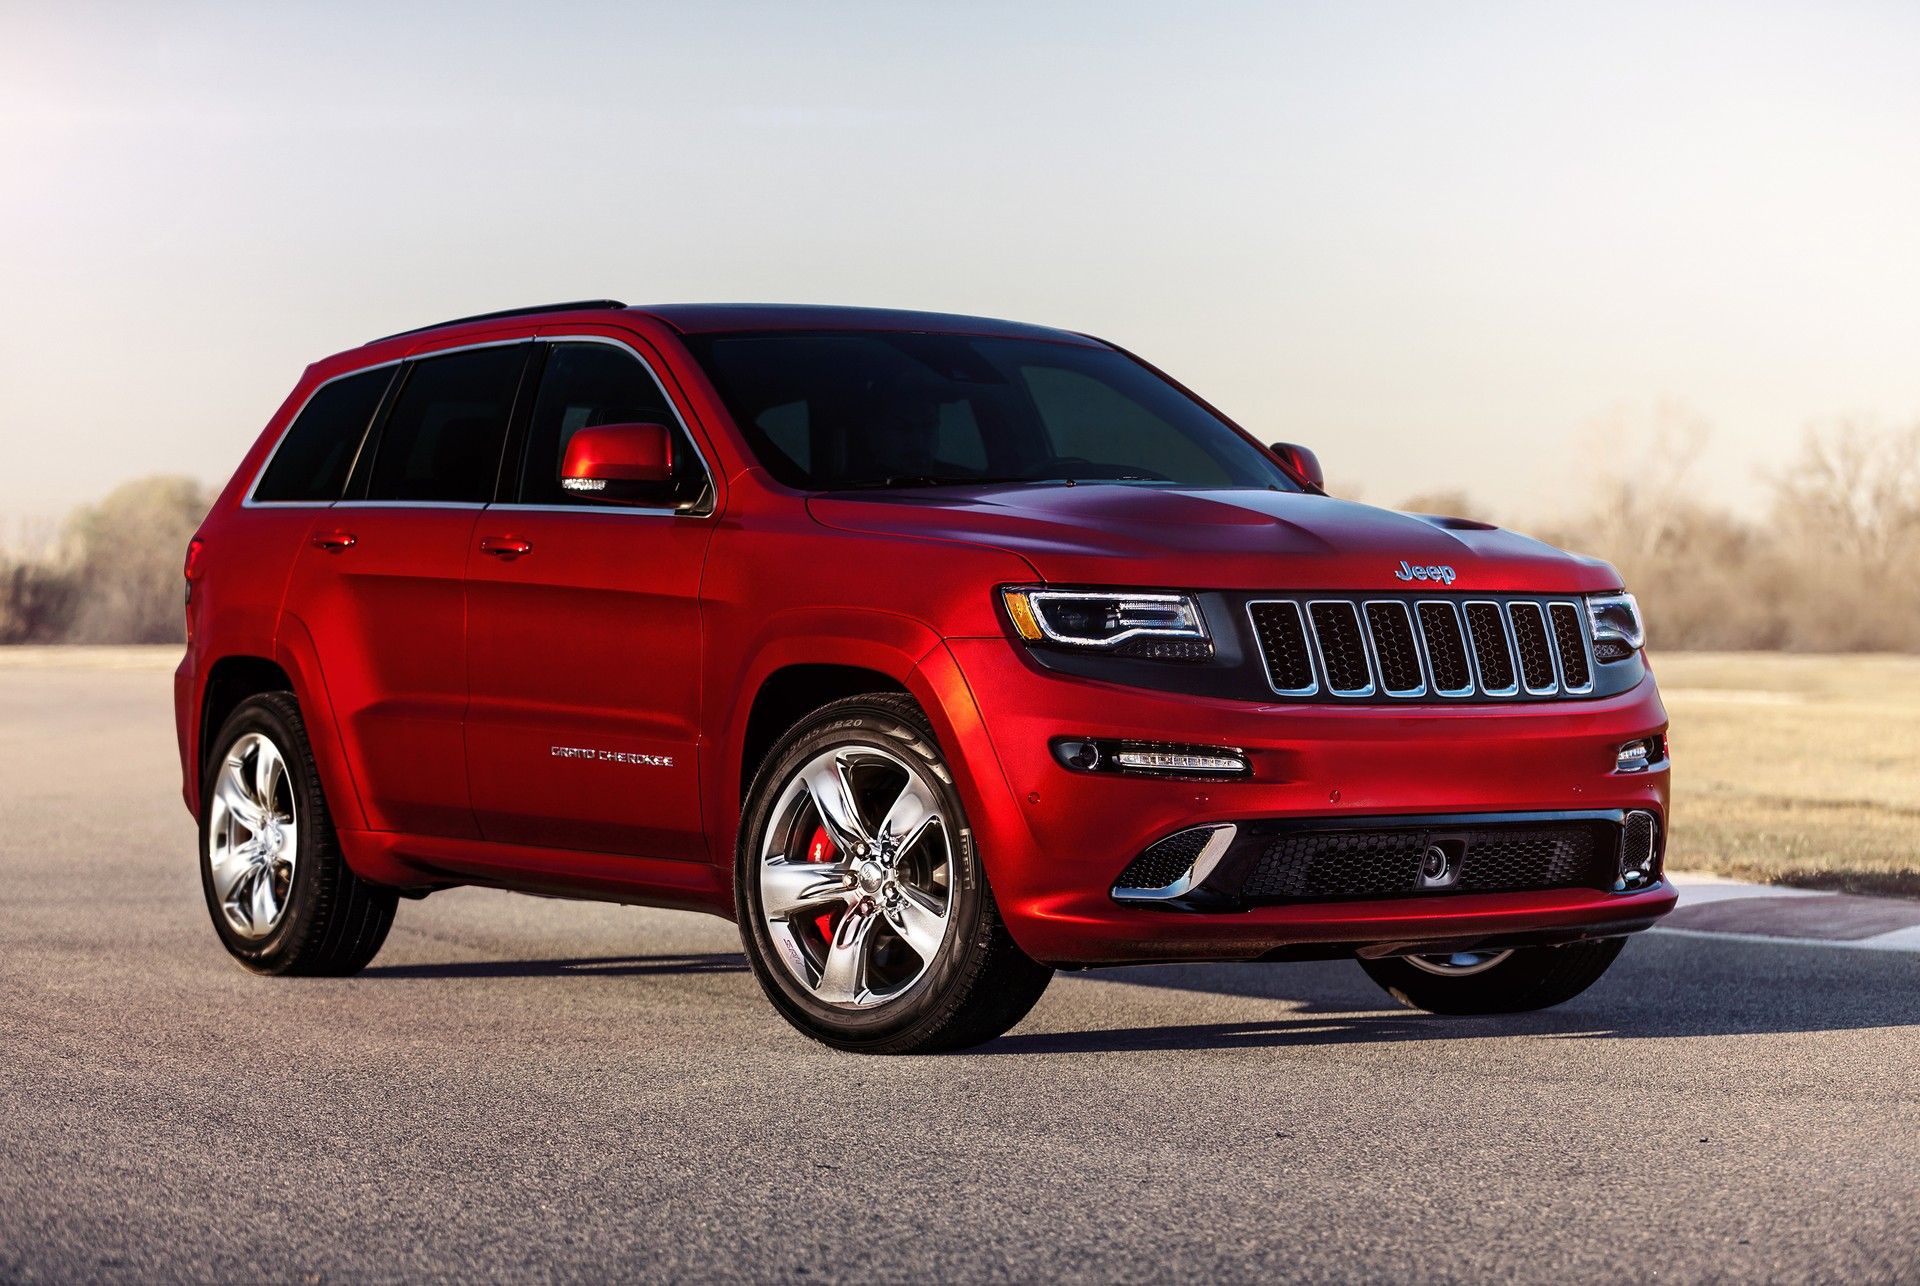 2015 Jeep Grand Cherokee SRT8 Supercharged